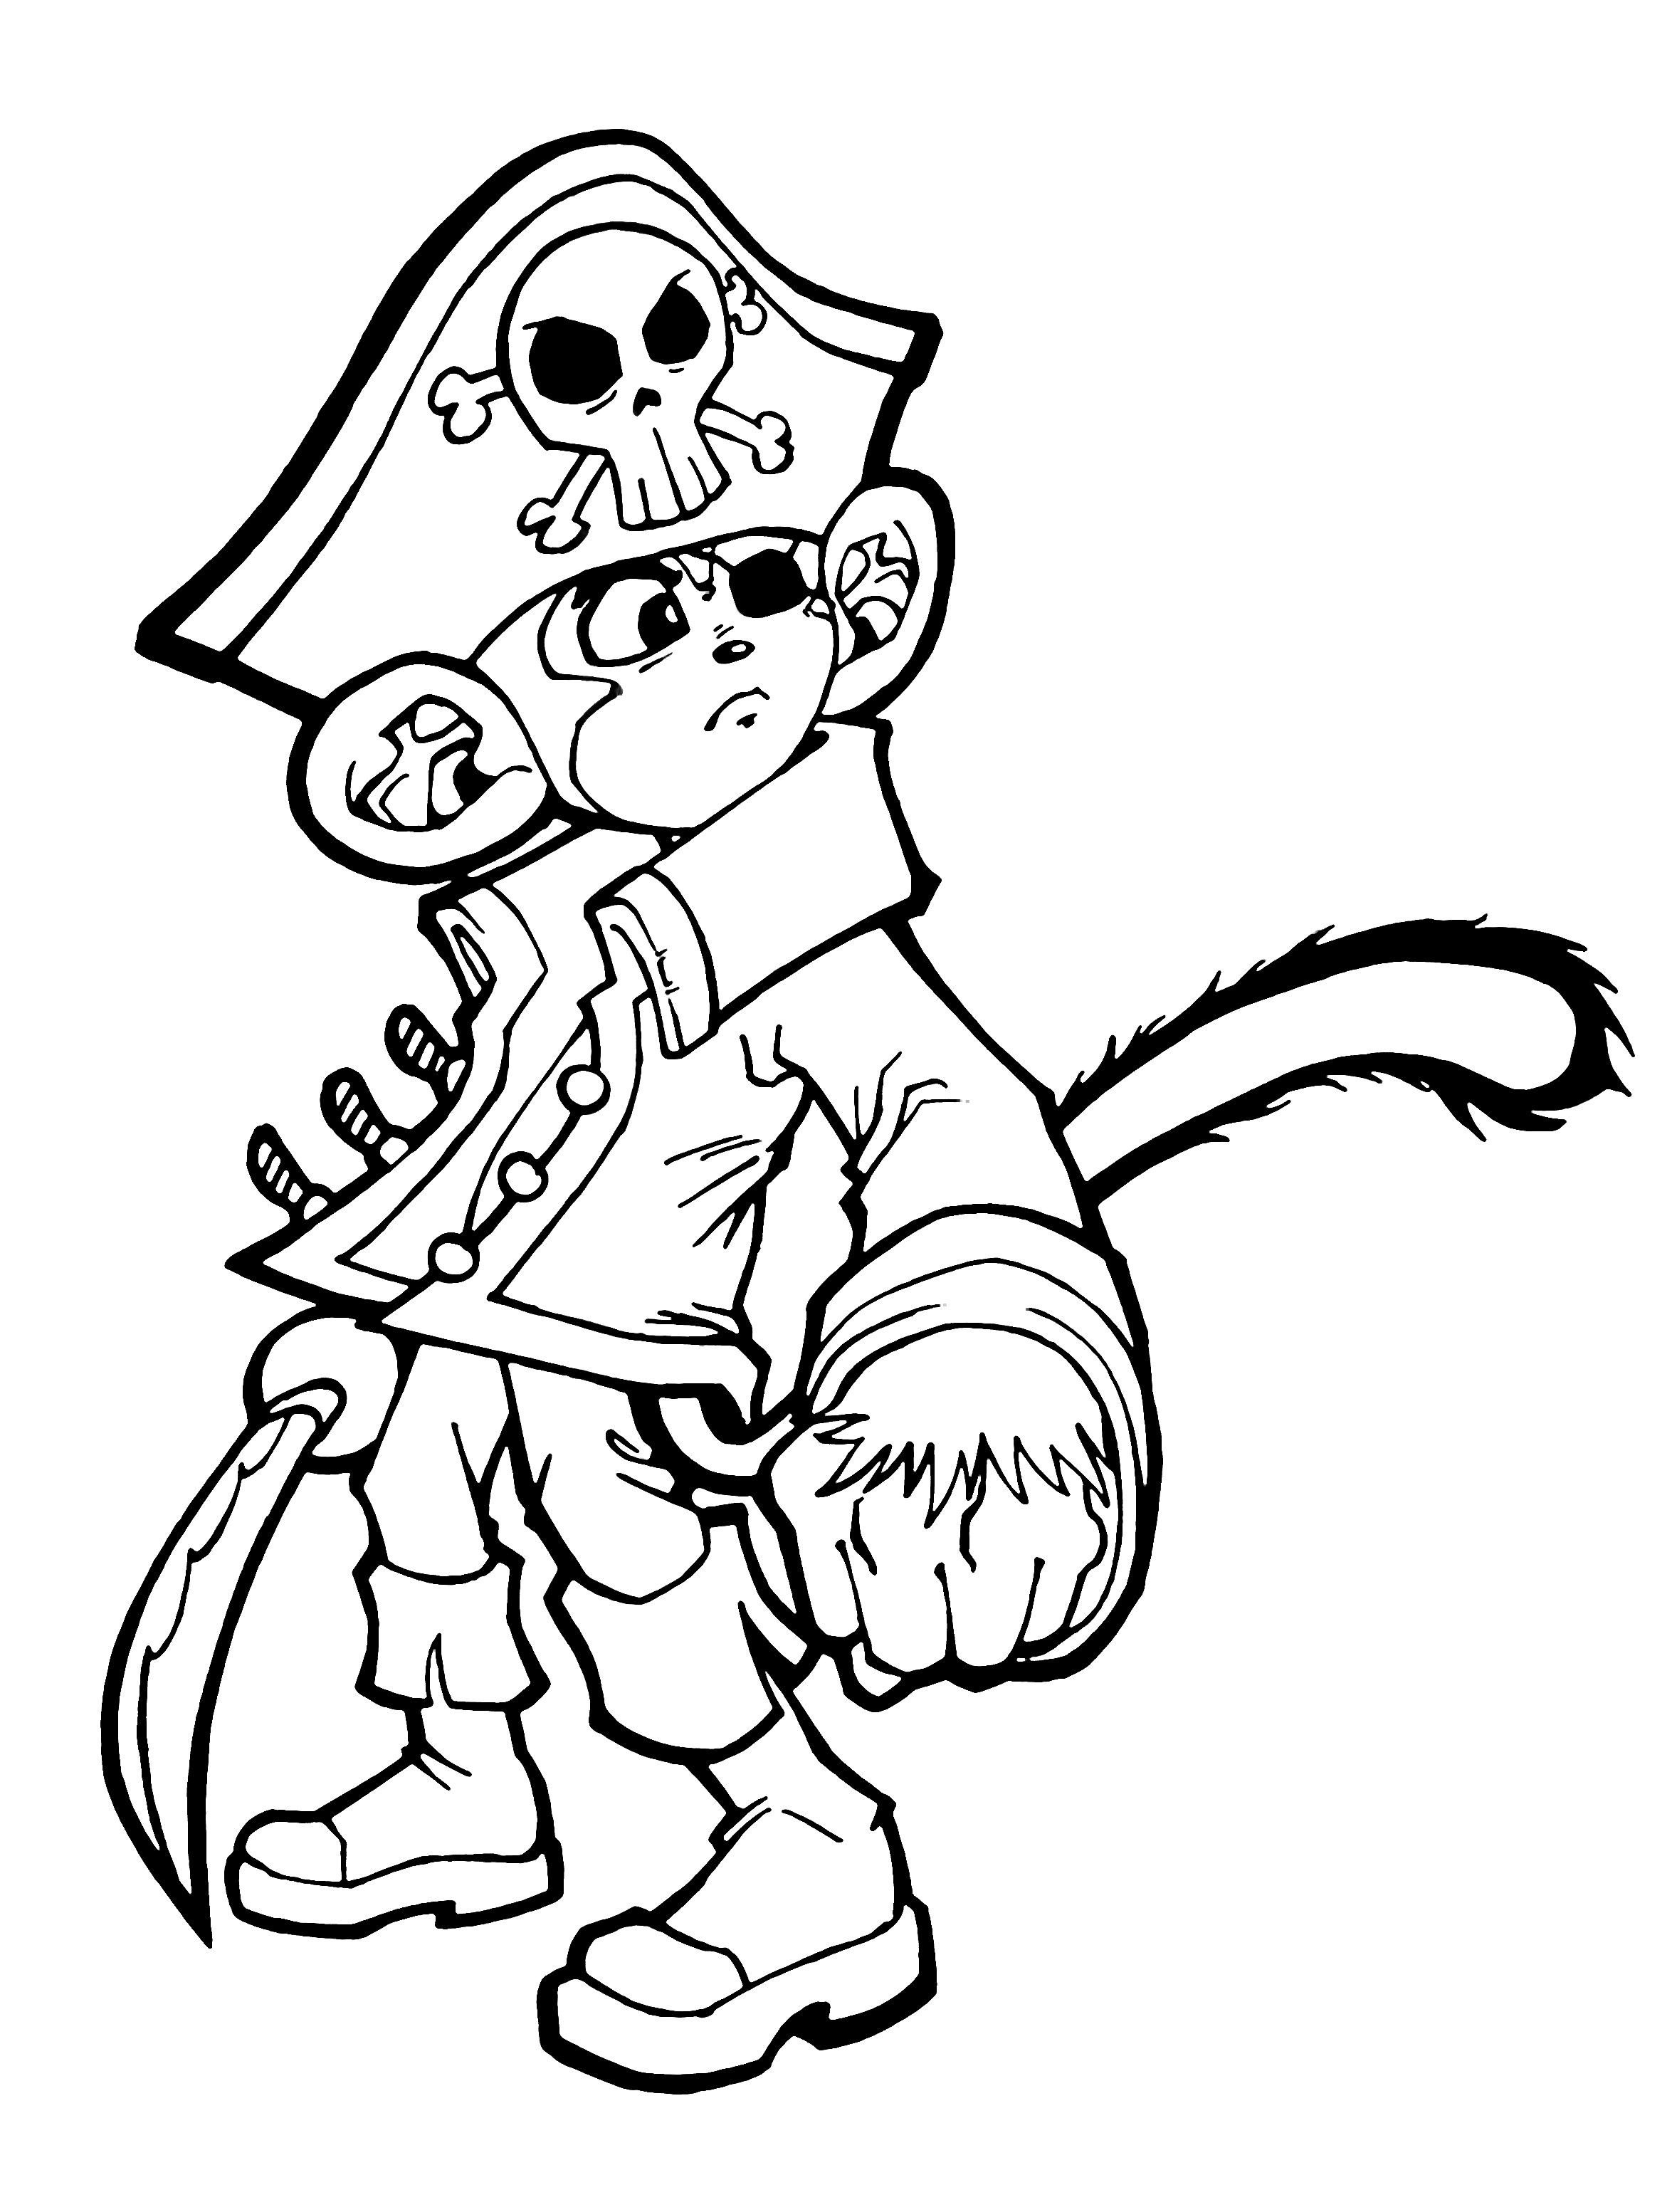 2356x3107 Cap'N Chef The Monkey Pirate By Capnchef